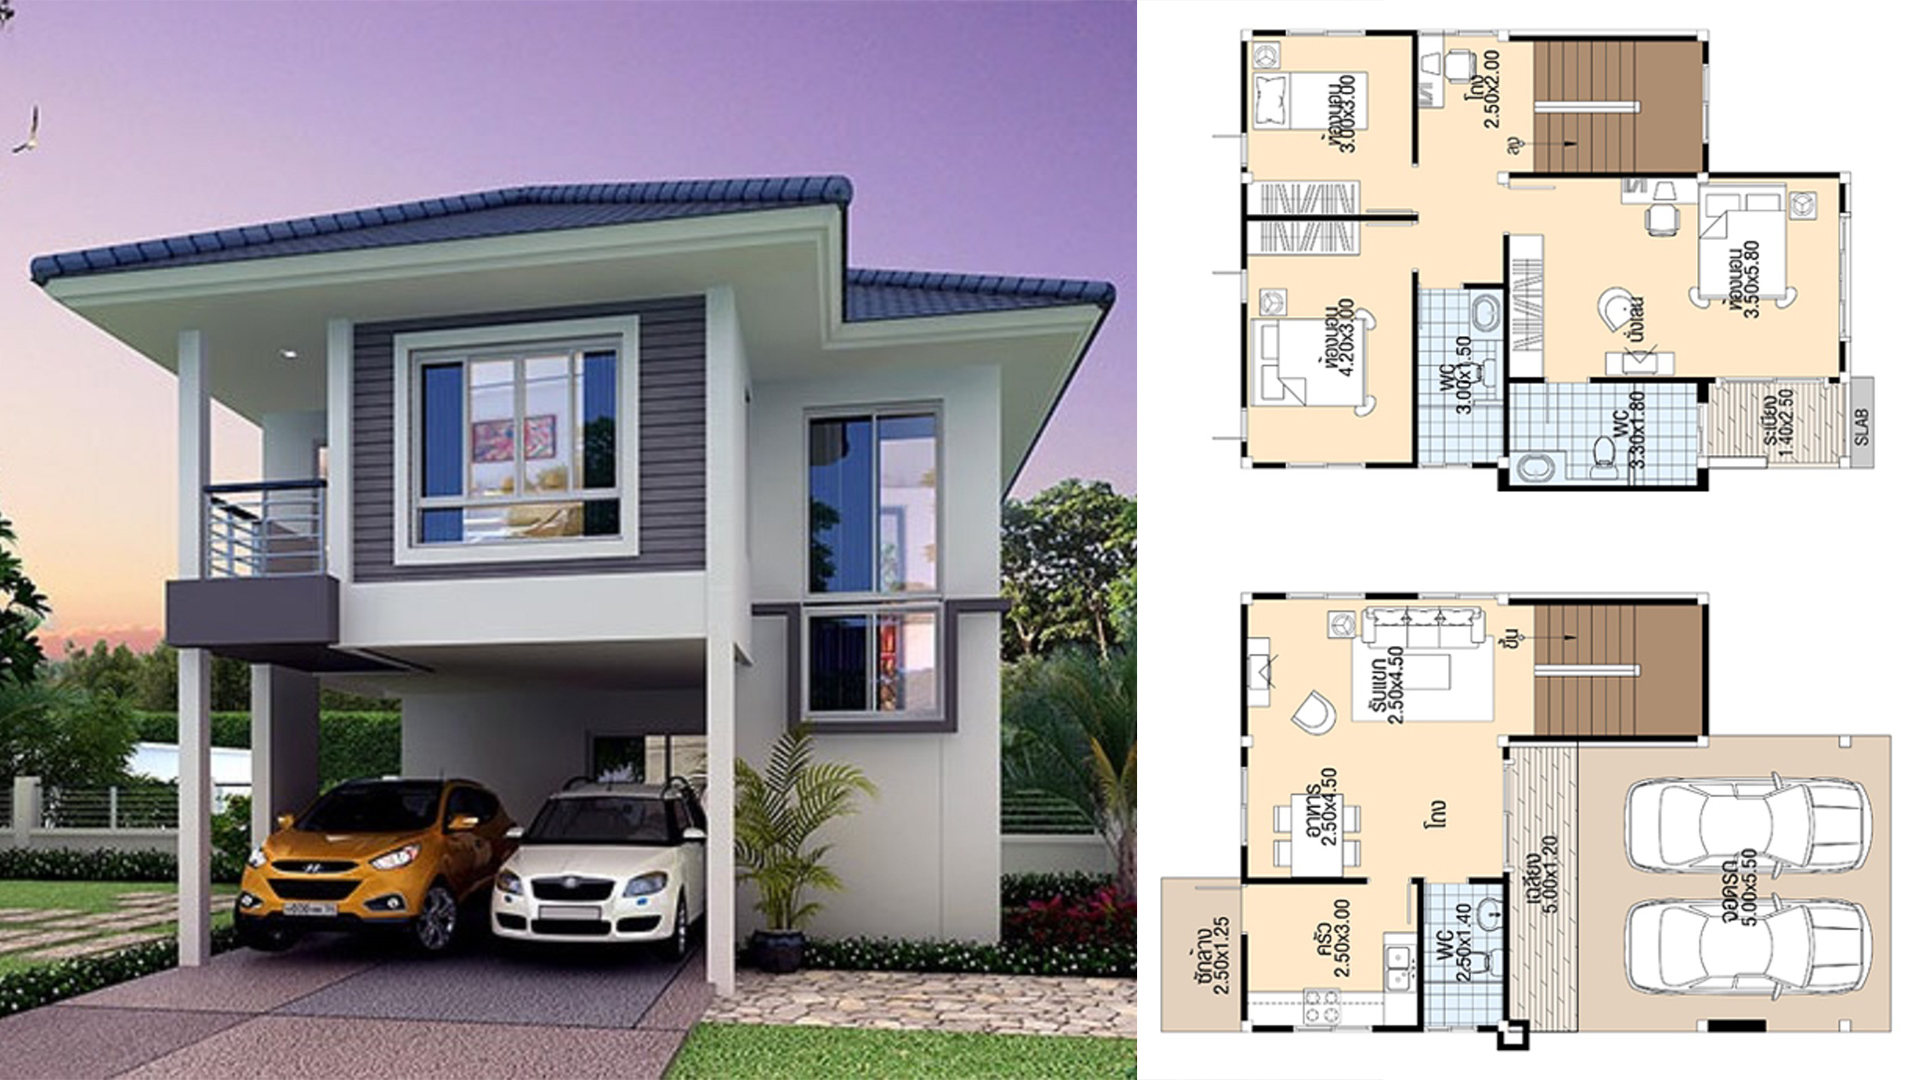 House Design 3d 7.5×11 with 3 bedrooms